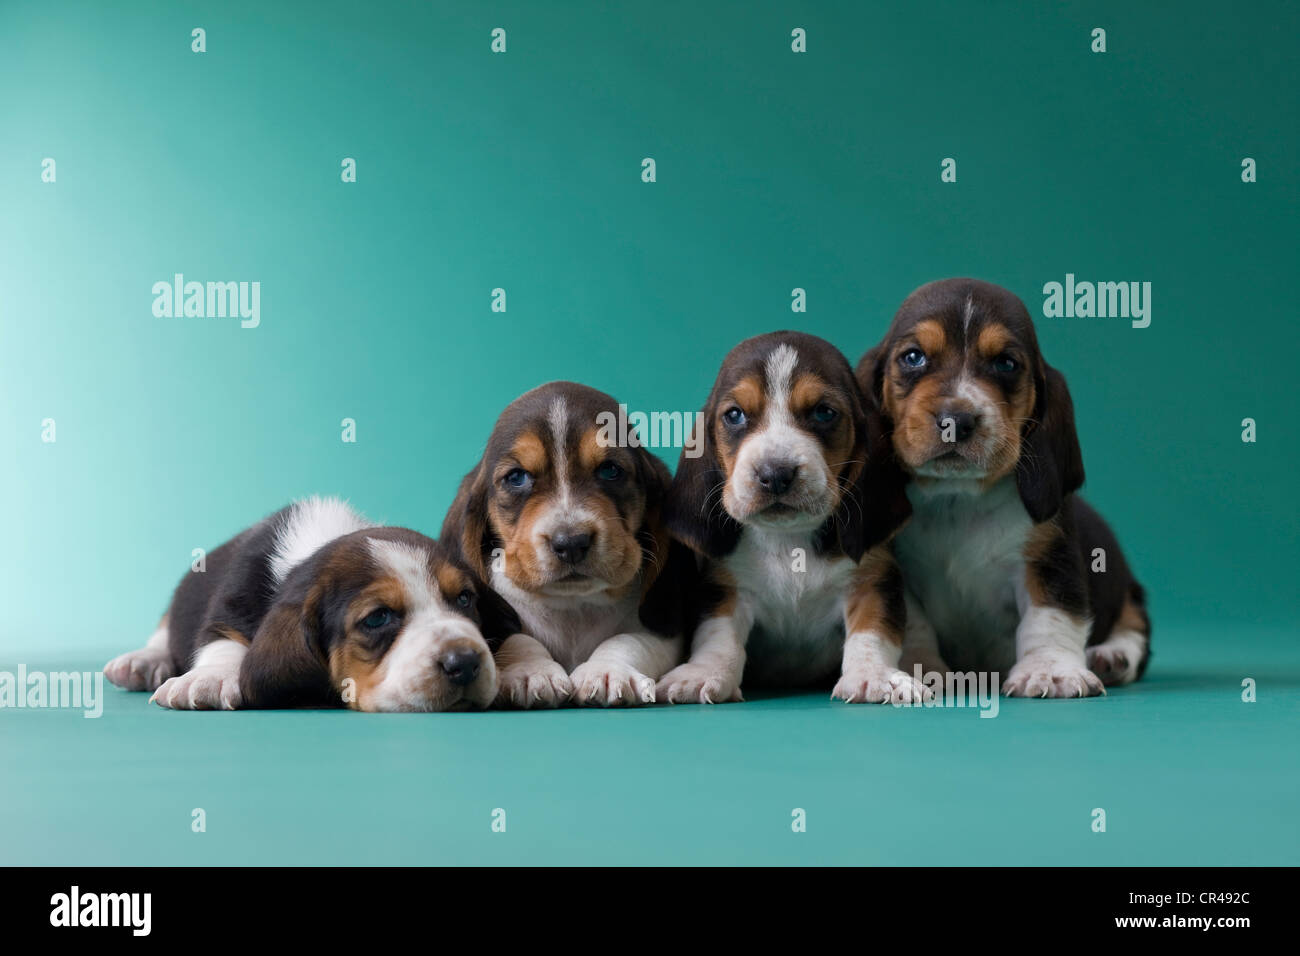 Four Basset Hound Puppies - Stock Image